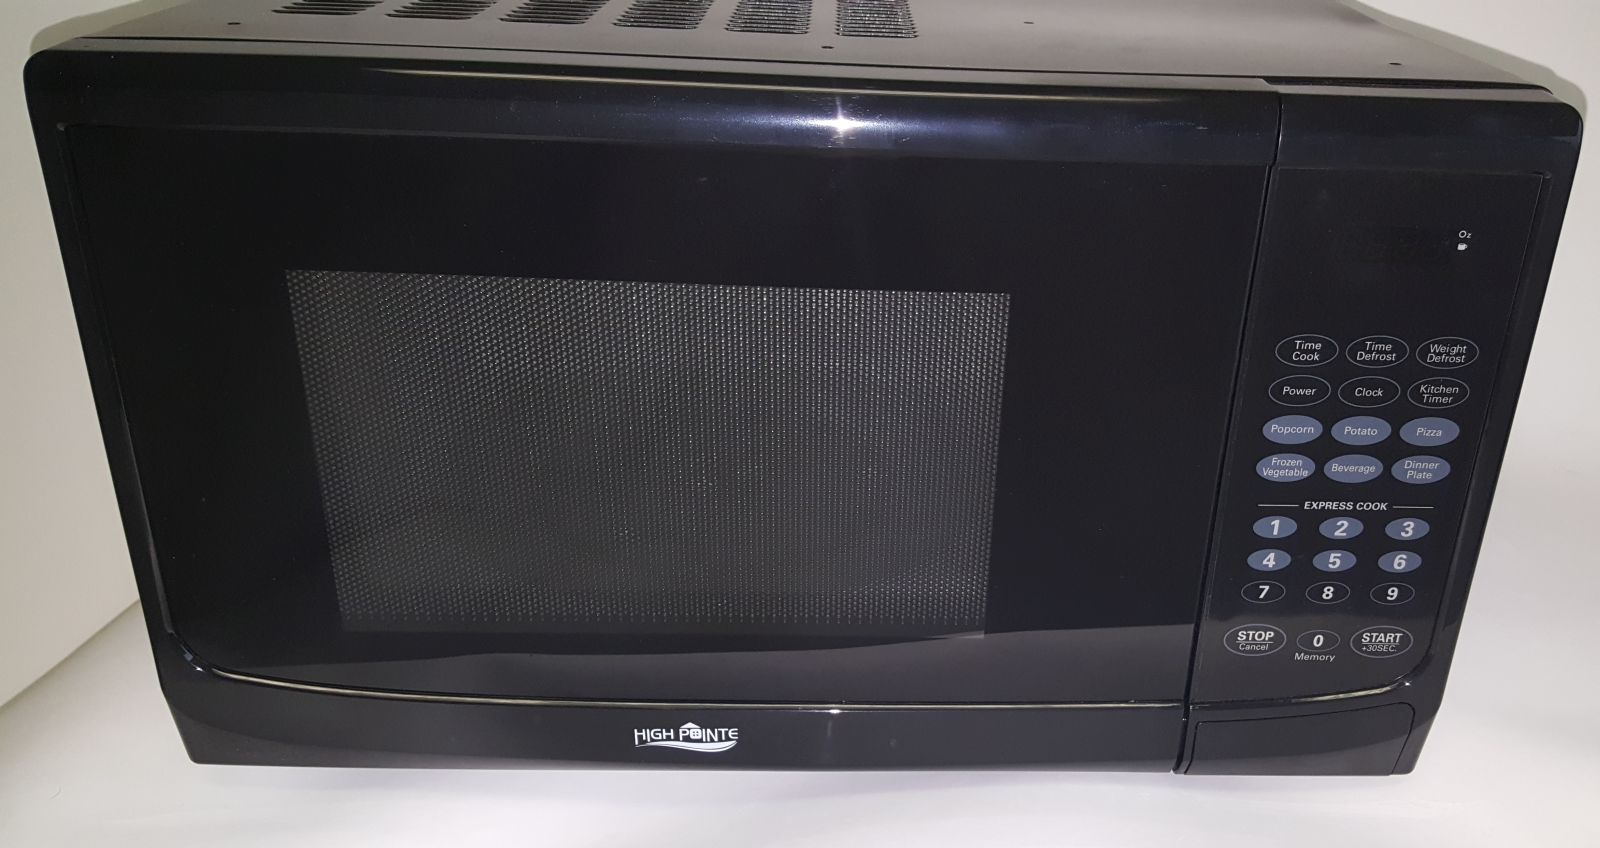 High Pointe Rv 120 Volt Microwave 1 0 Cu Ft Em925rww Clacustoms